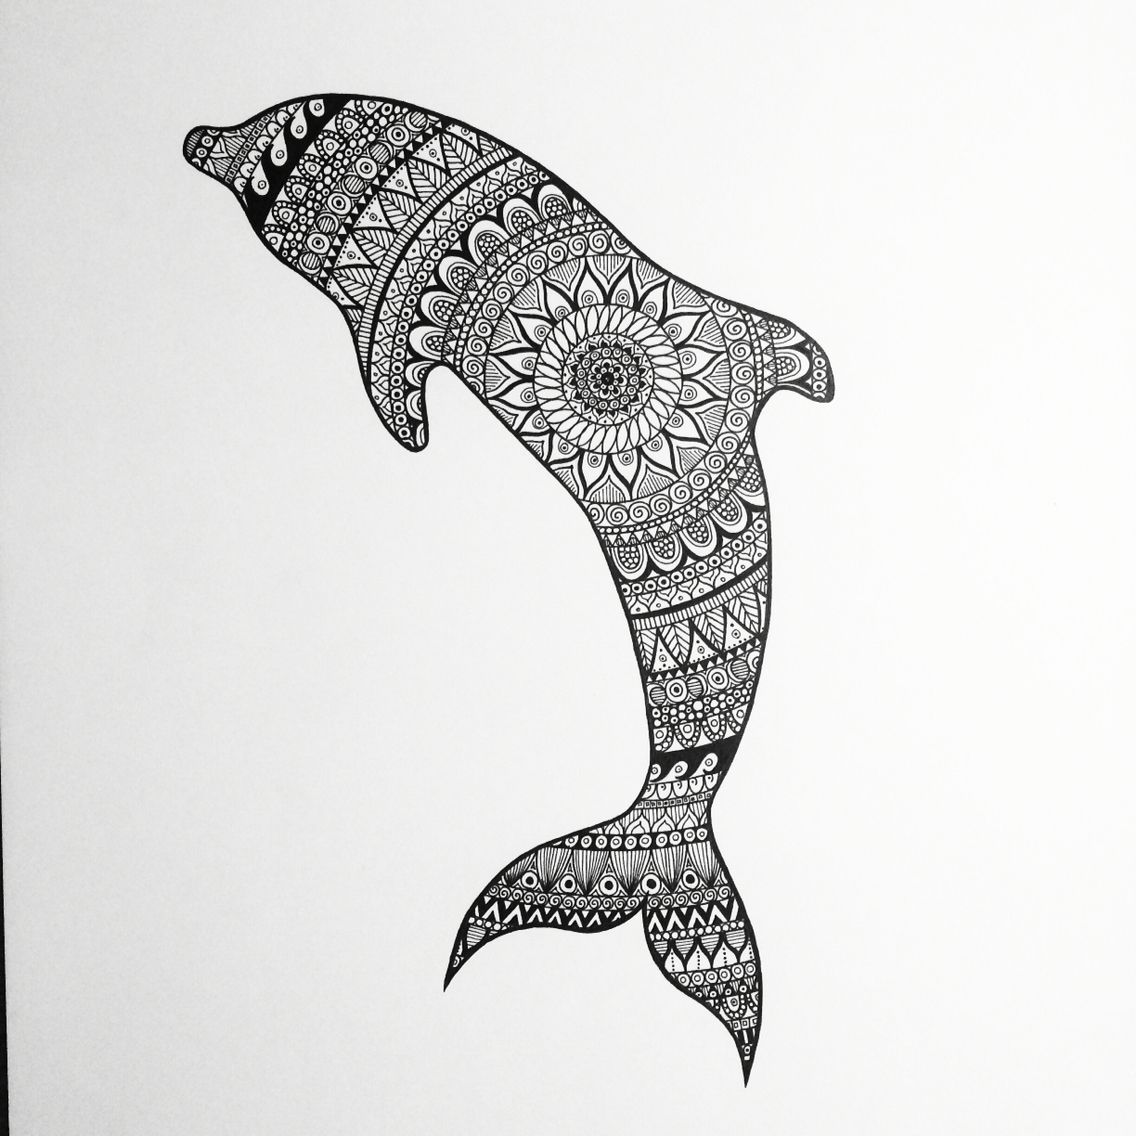 Zentangle Dolphin zentangle dolphin black white mandala doodle drawing animal BampW